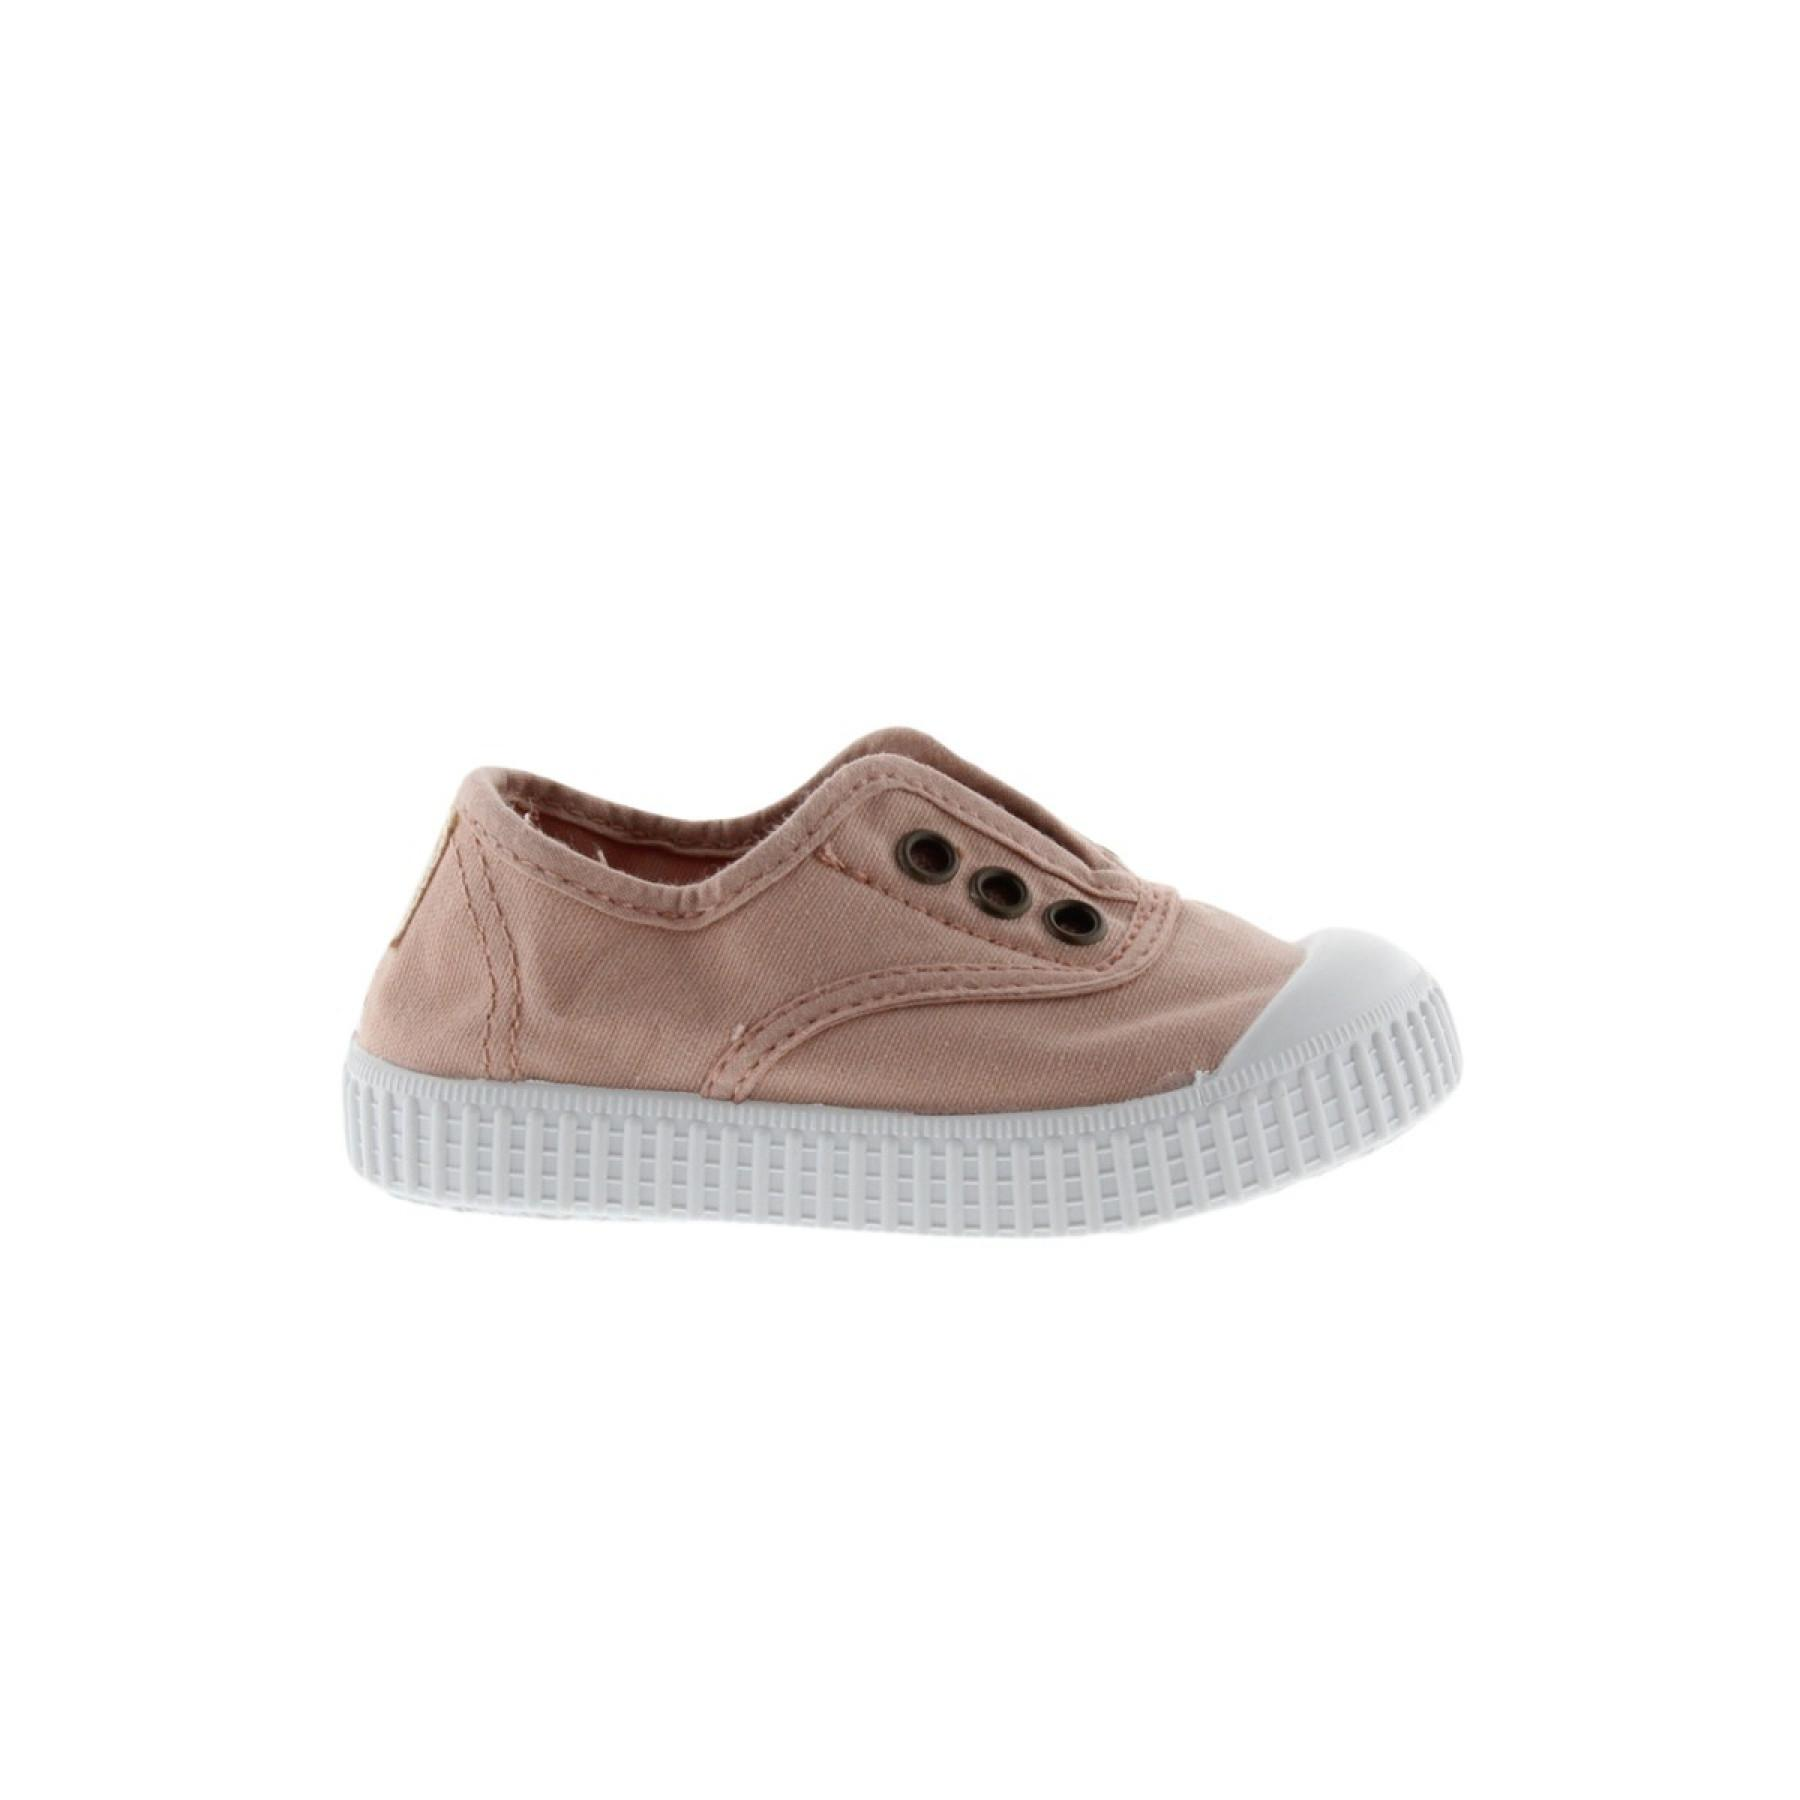 Victoria 1915 English girl shoes washed canvas